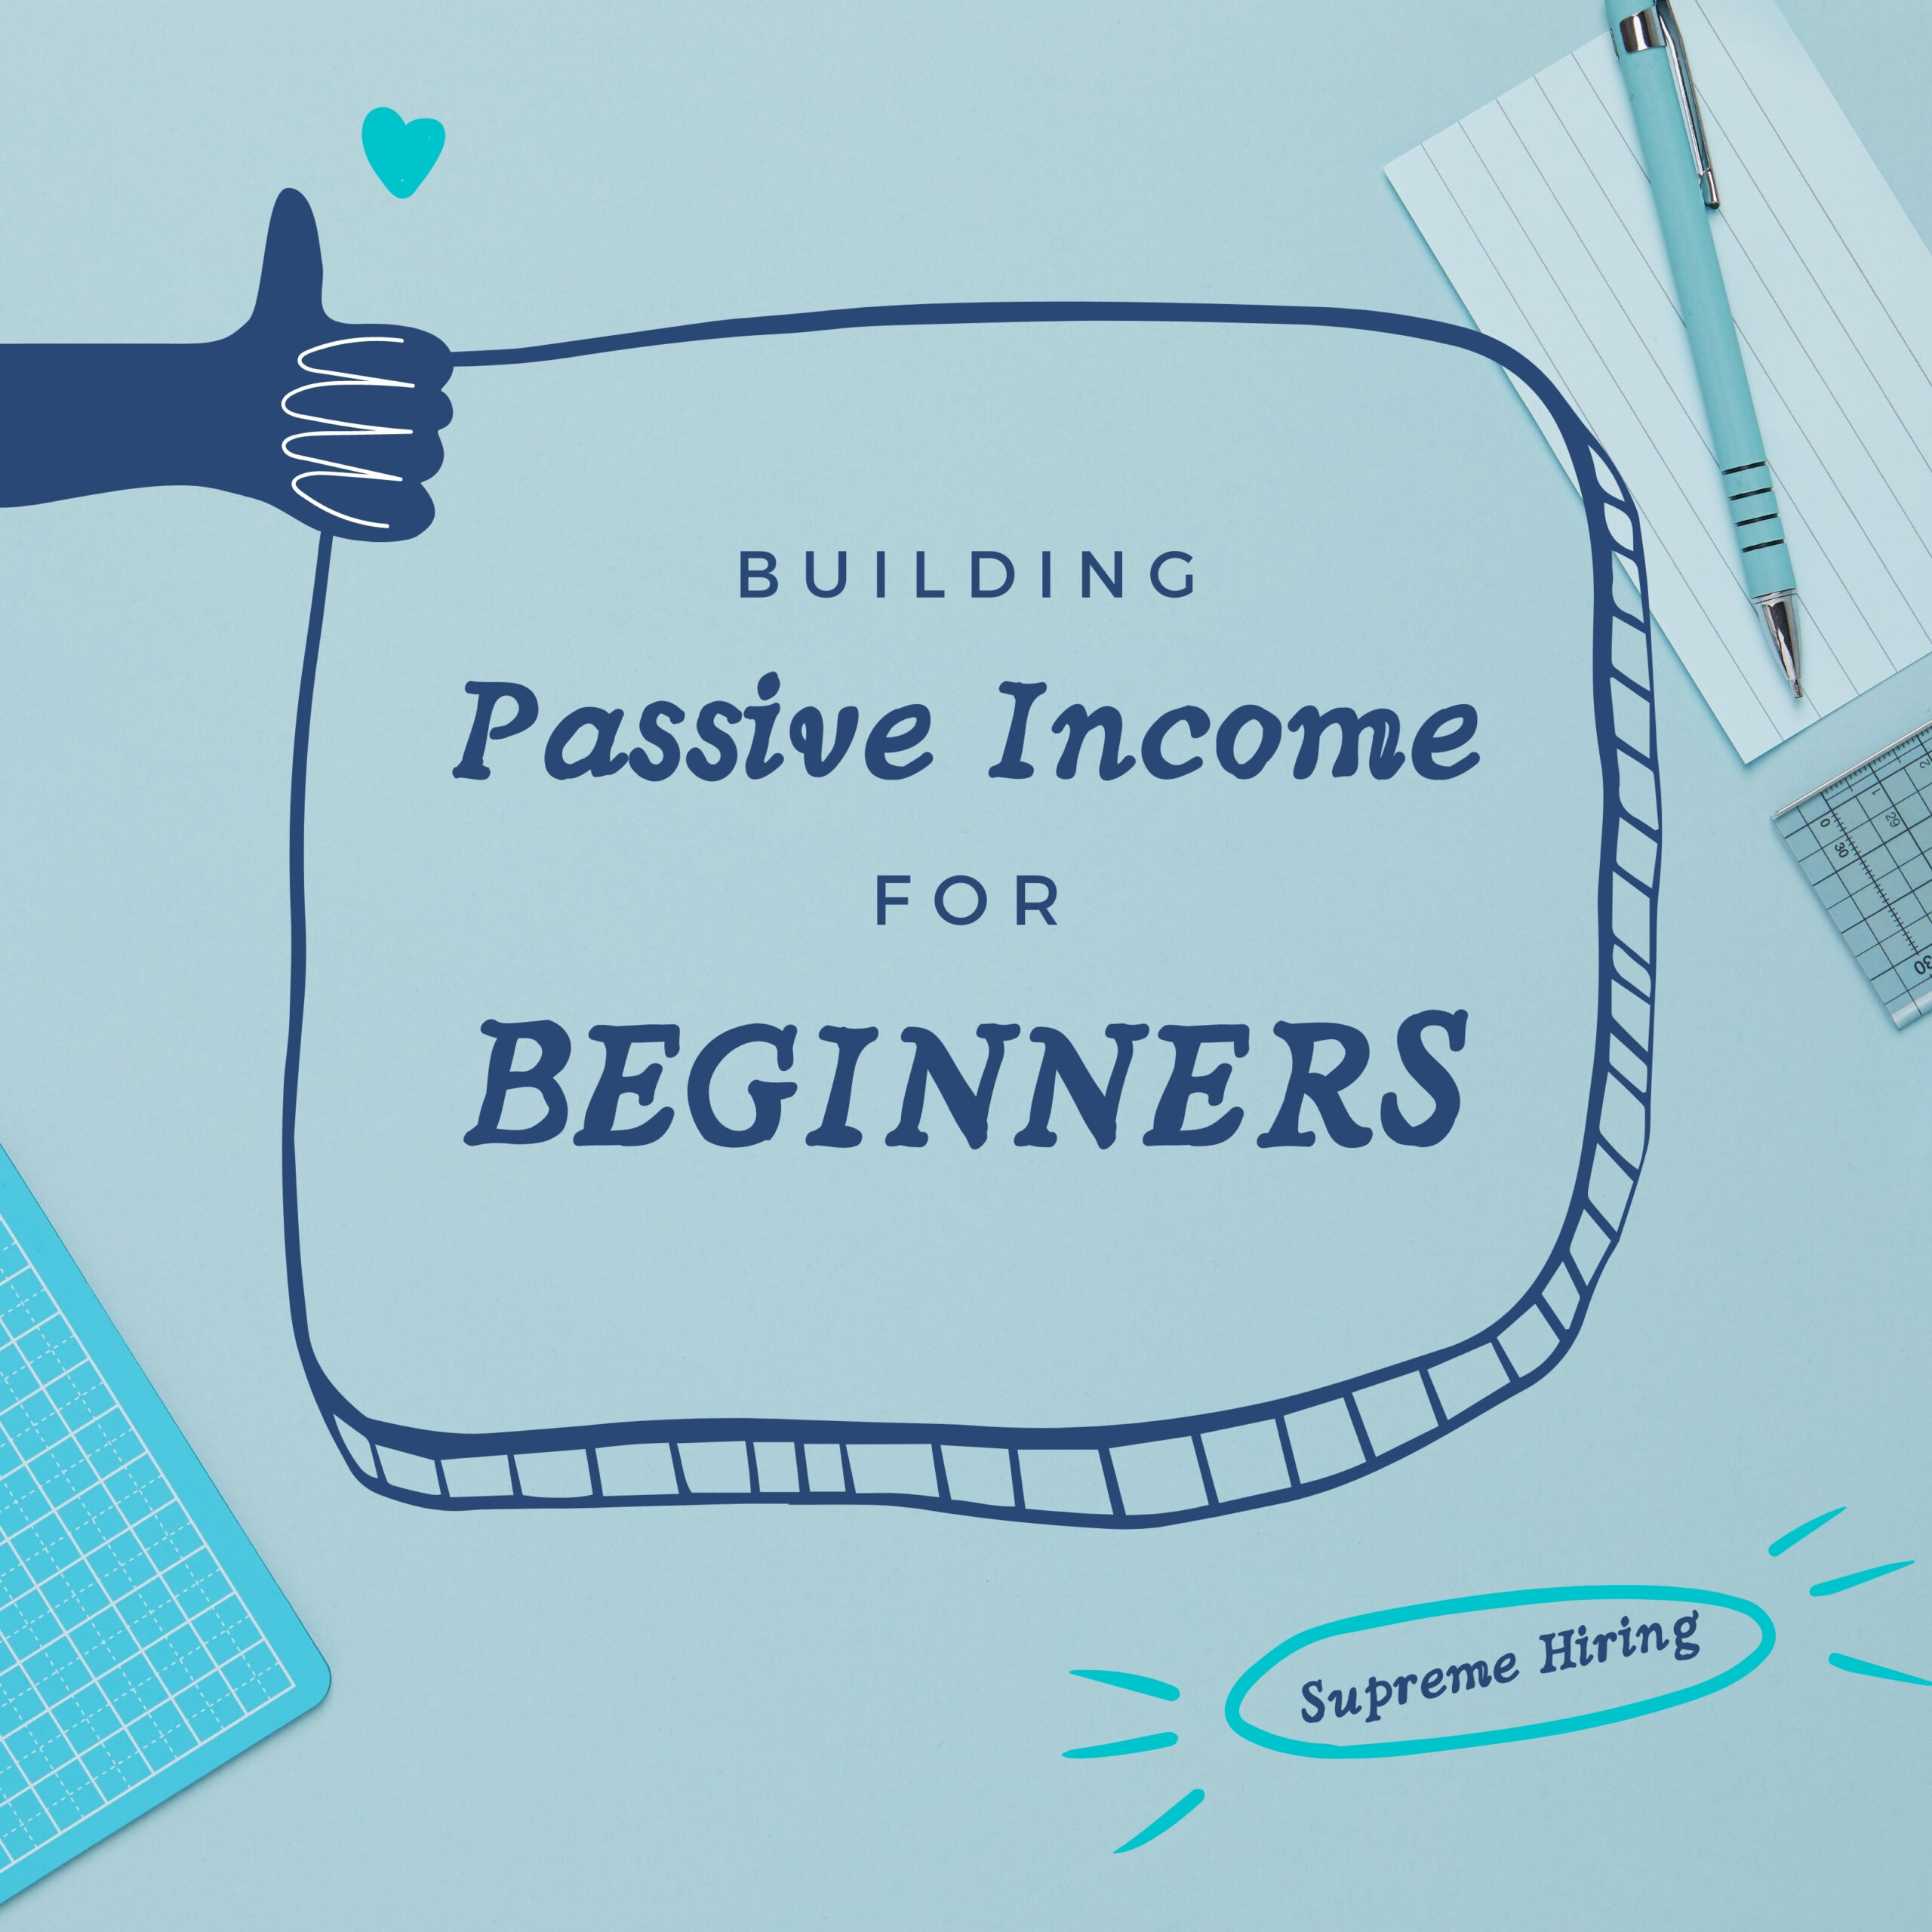 Building Passive Income for Beginners